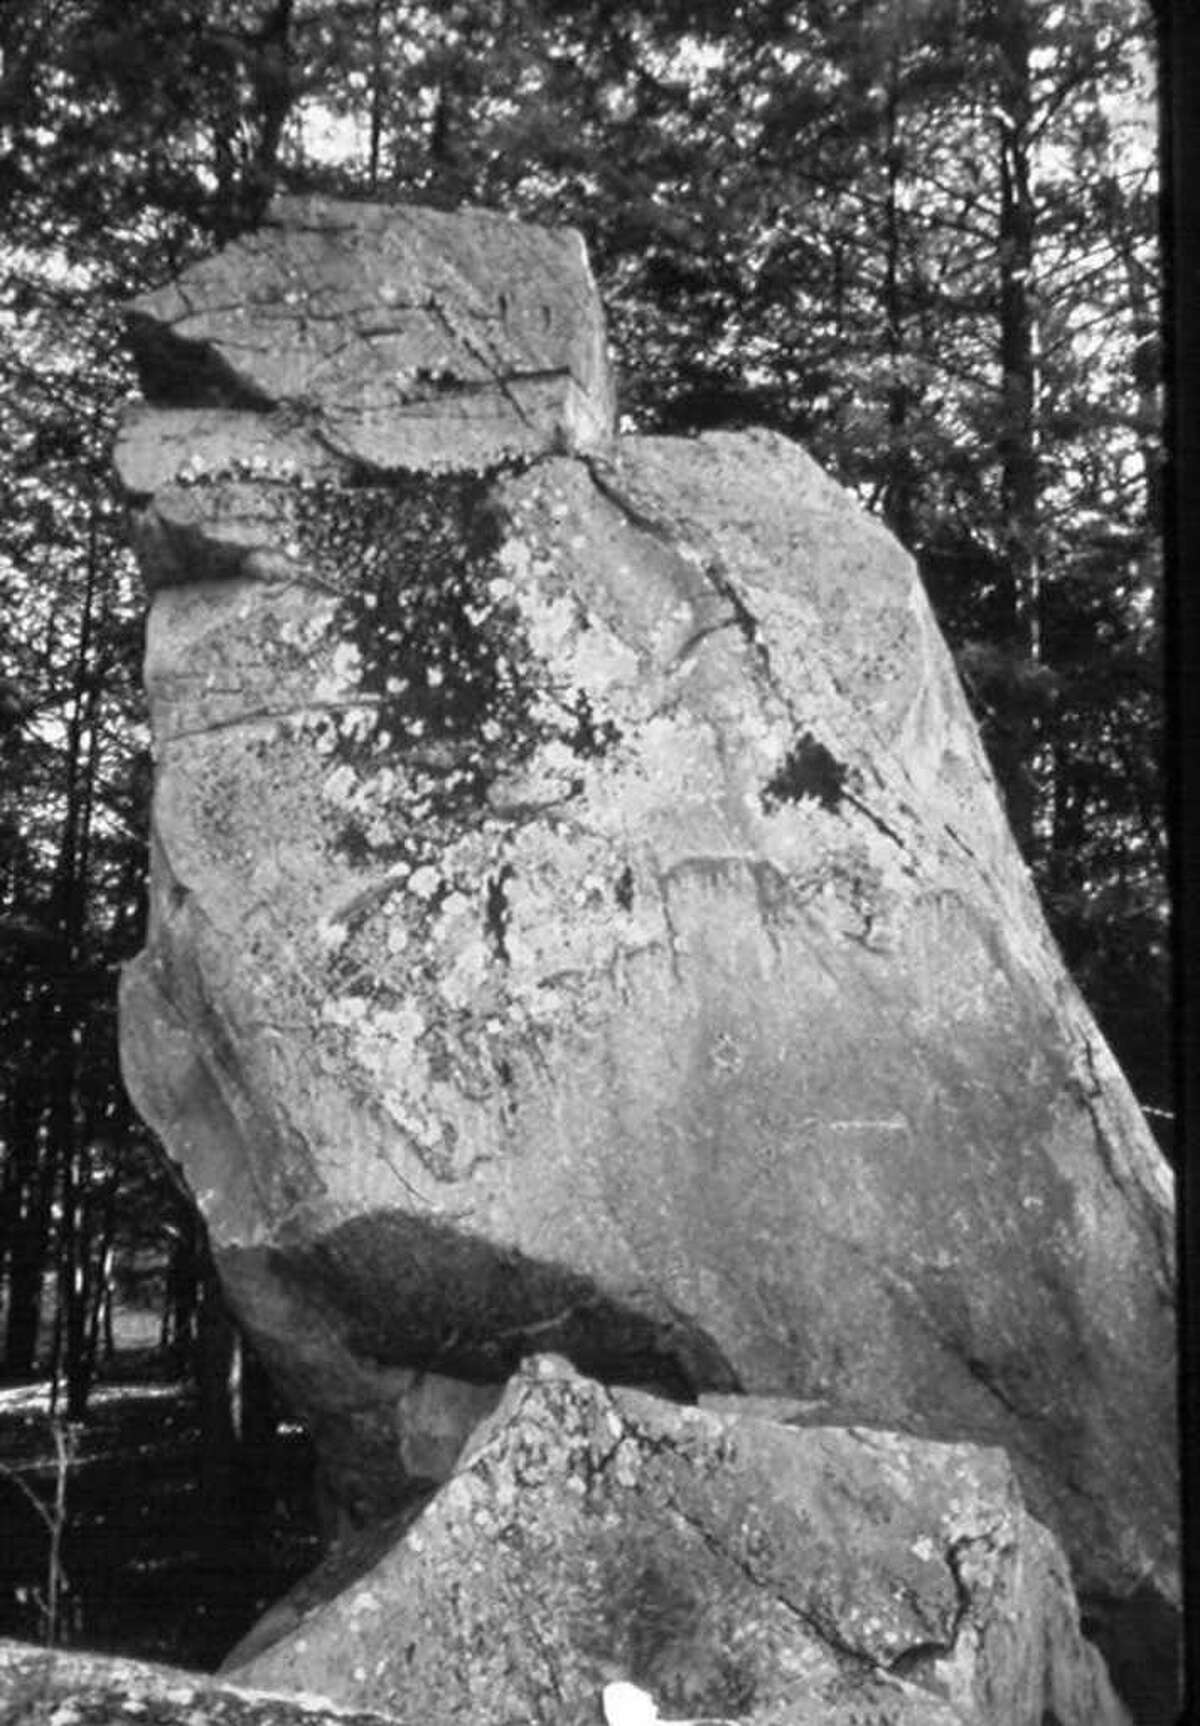 Hawk Rock, a 25-foot-tall carved boulder, is located in Putnam County, NY.